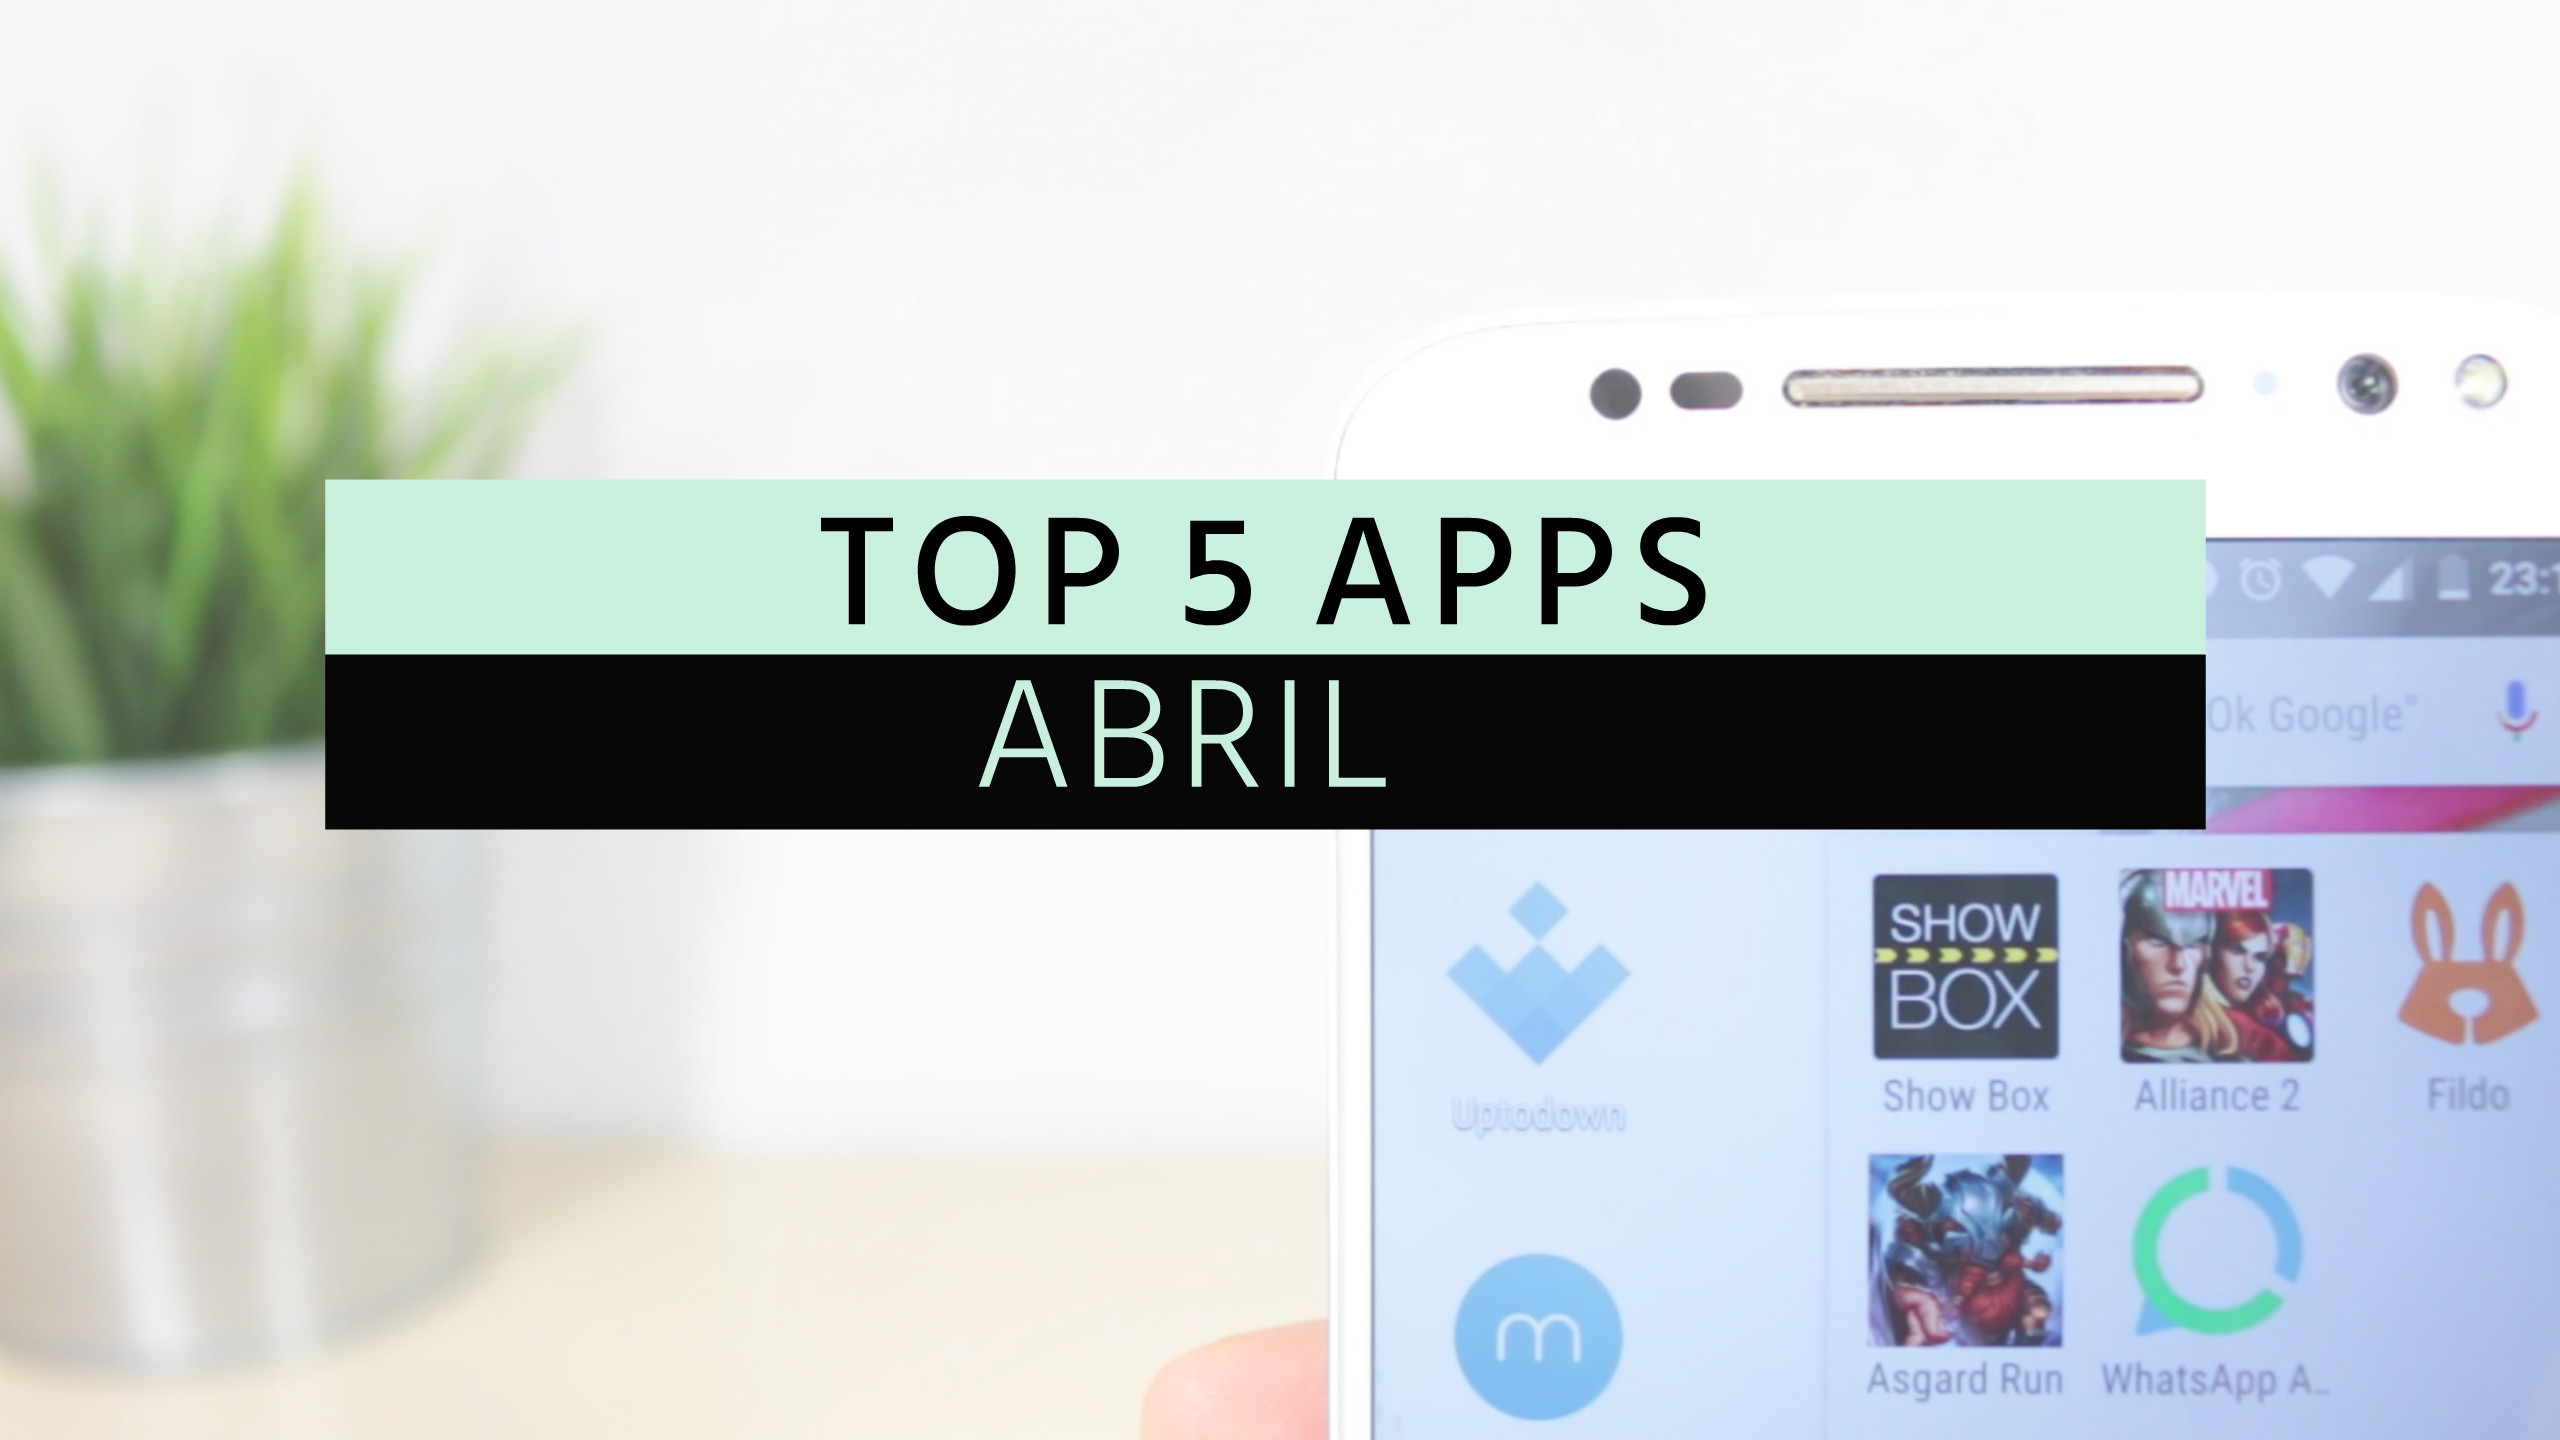 TOP APPS ABRIL